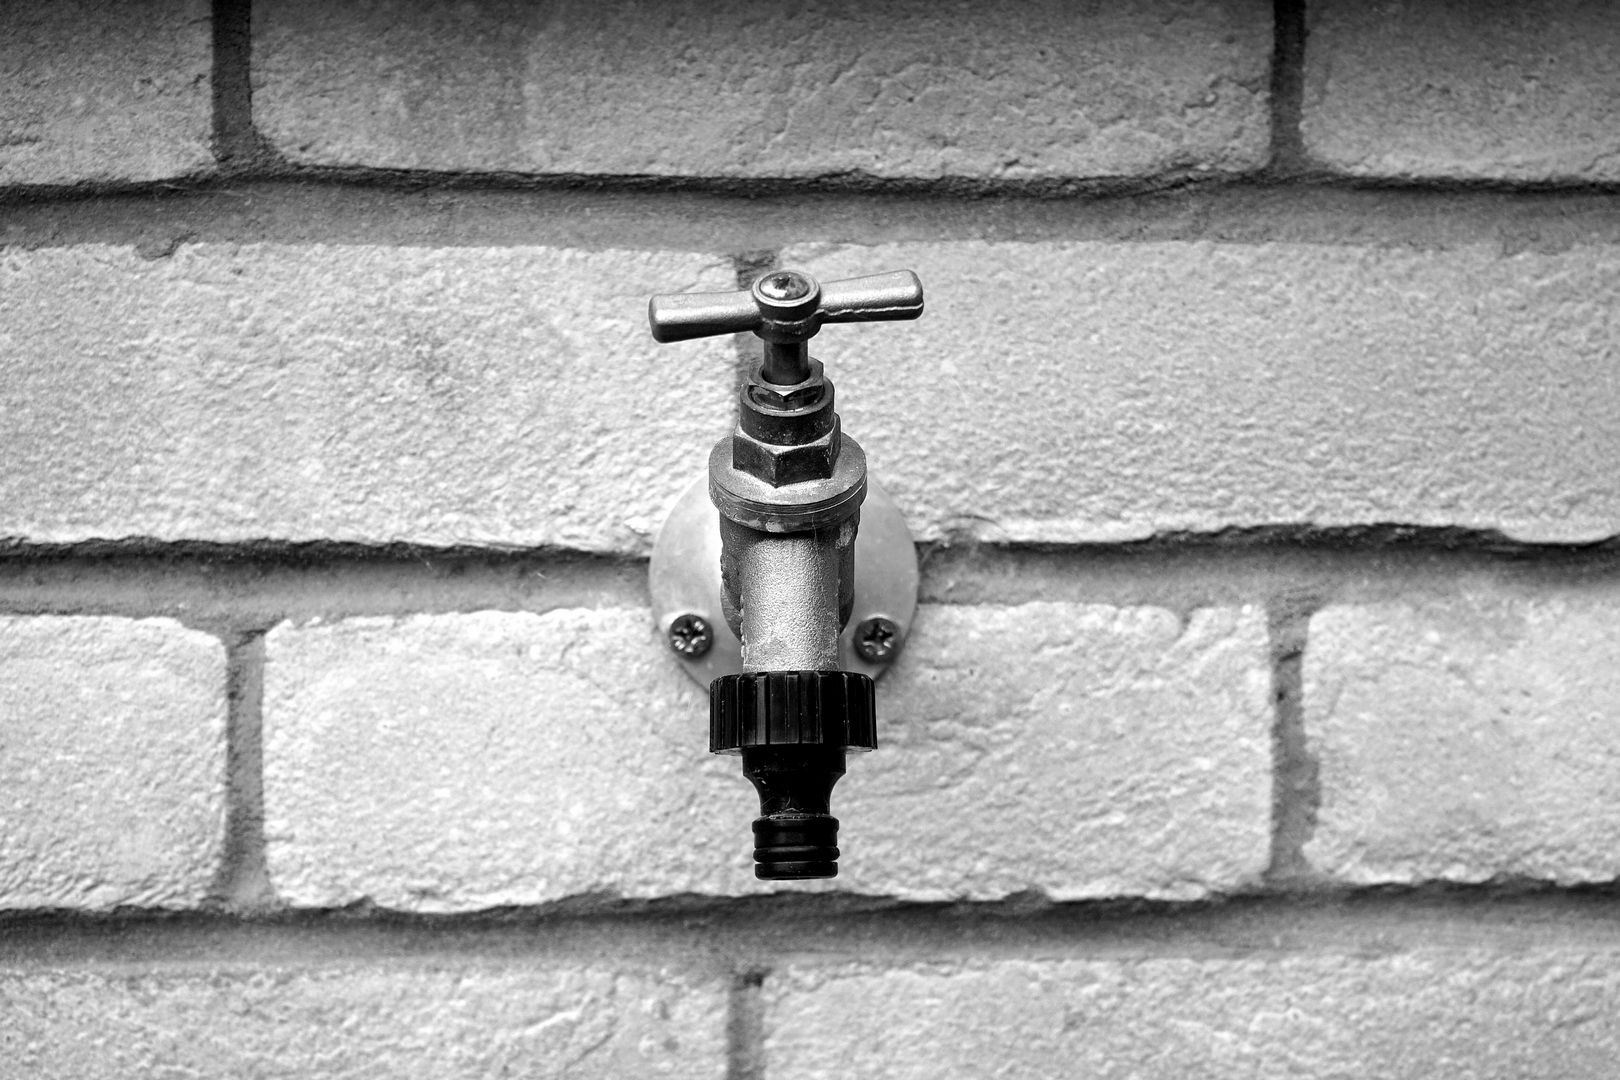 Turn off outdoor faucets to prevent ice build ups.